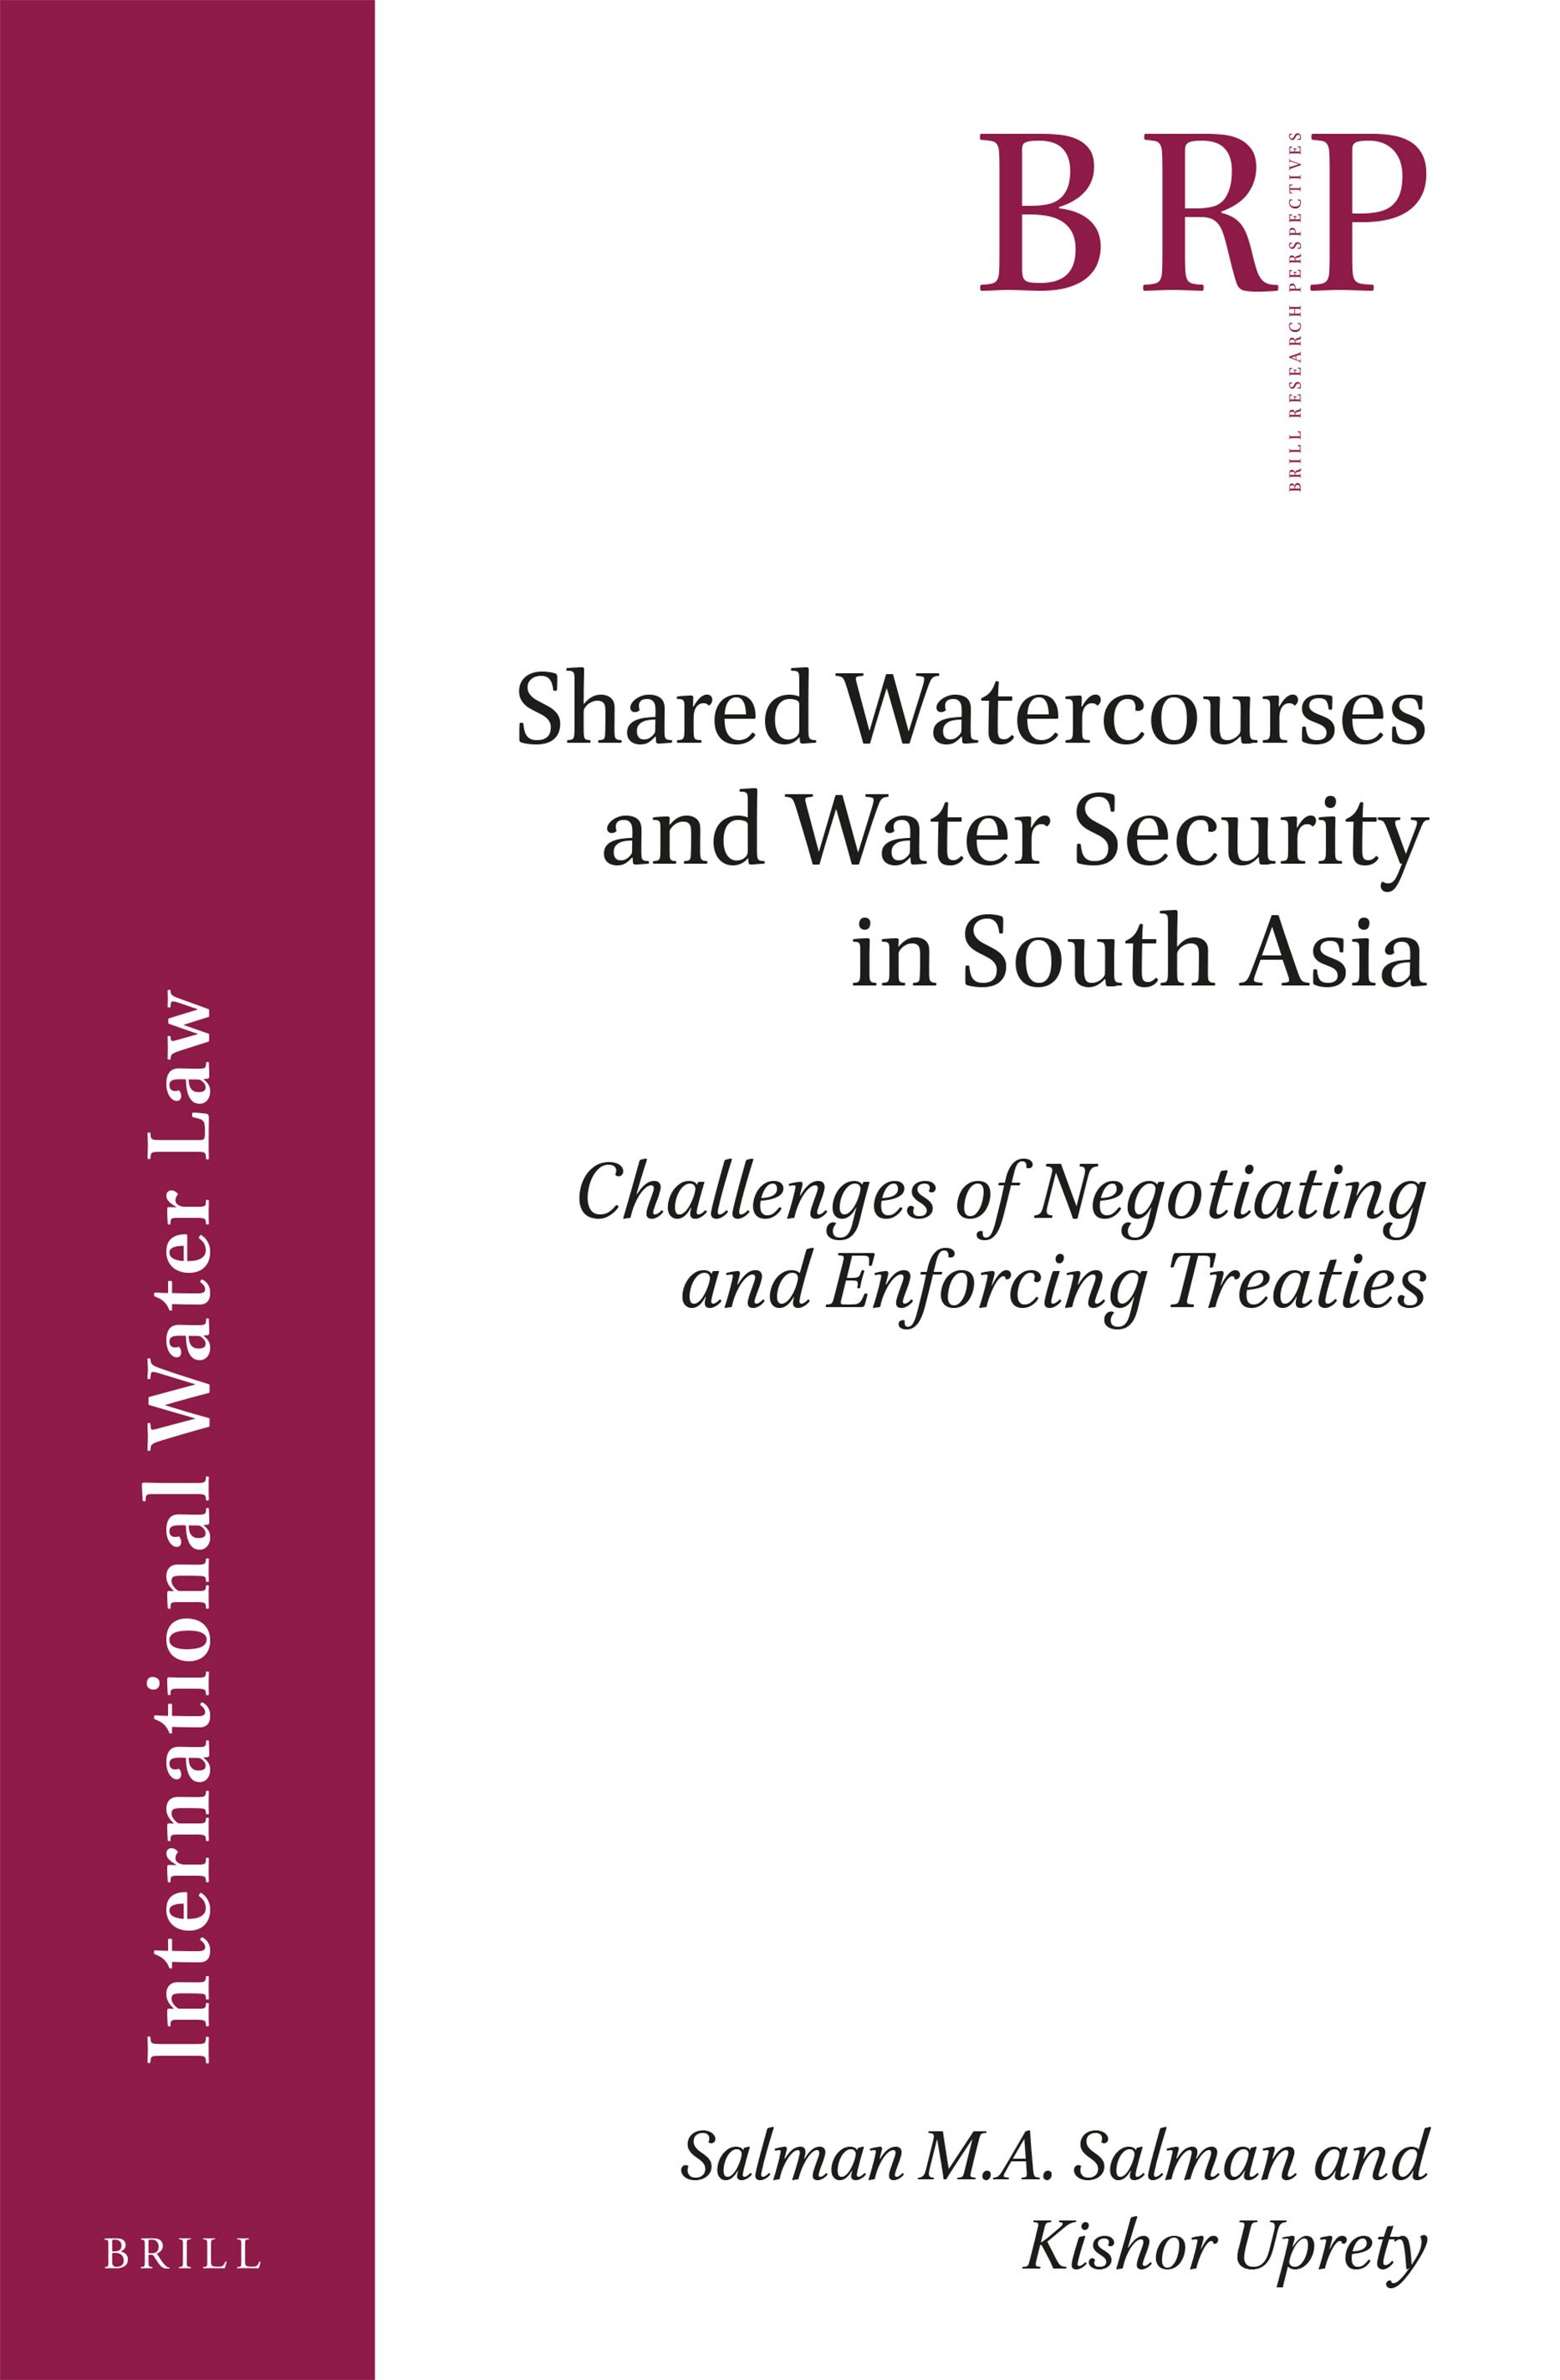 Shared Watercourses And Water Security In South Asia Challenges Of Negotiating And Enforcing Treaties In Shared Watercourses And Water Security In South Asia